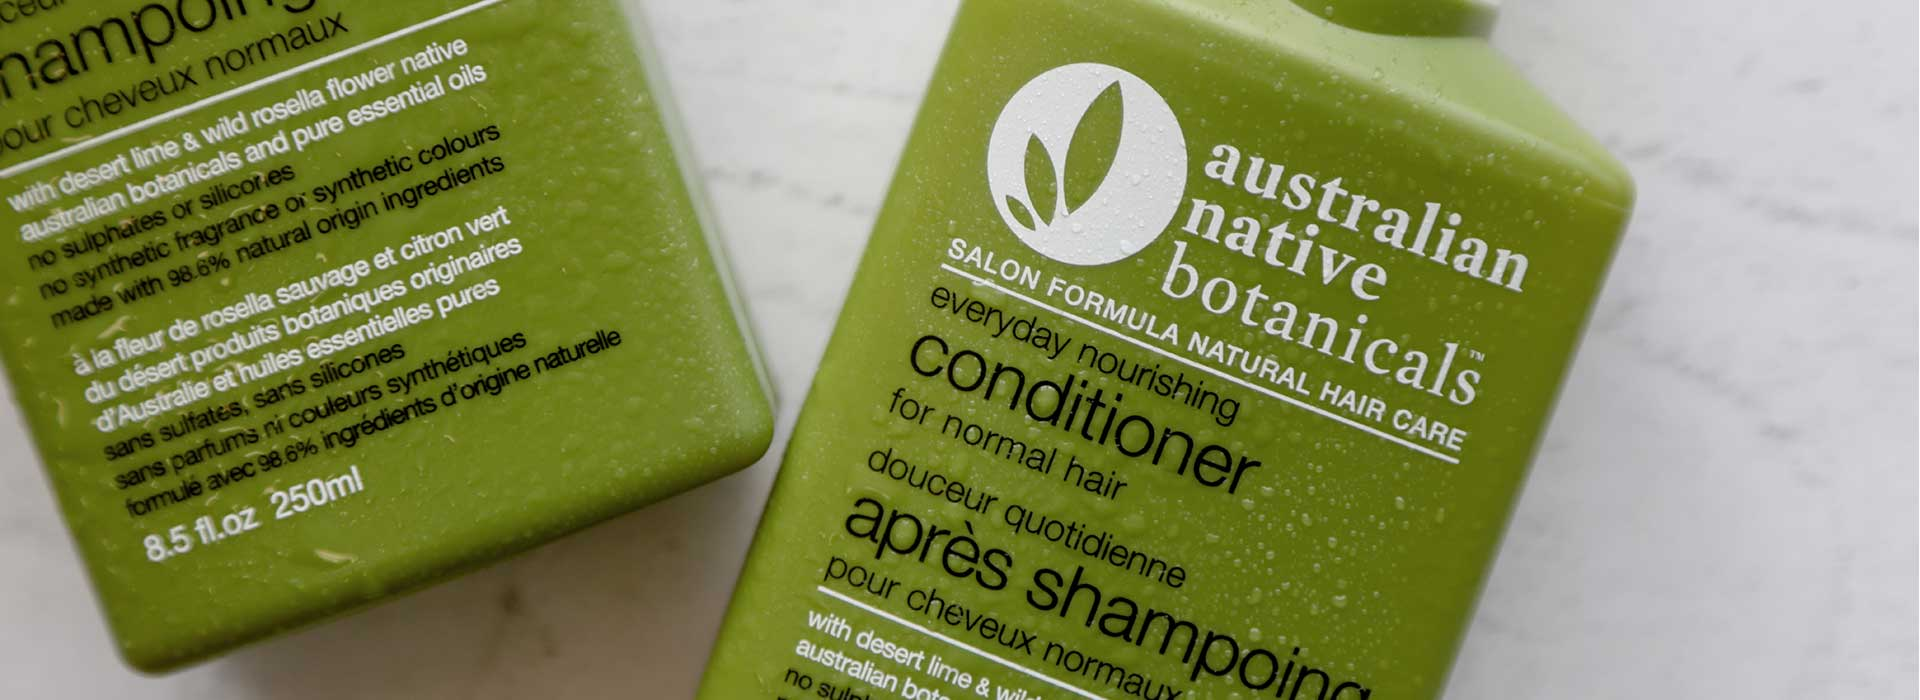 Australian Native Botanicals<br />Rejuvenating & Nourishing Pack<br /> for Normal Hair